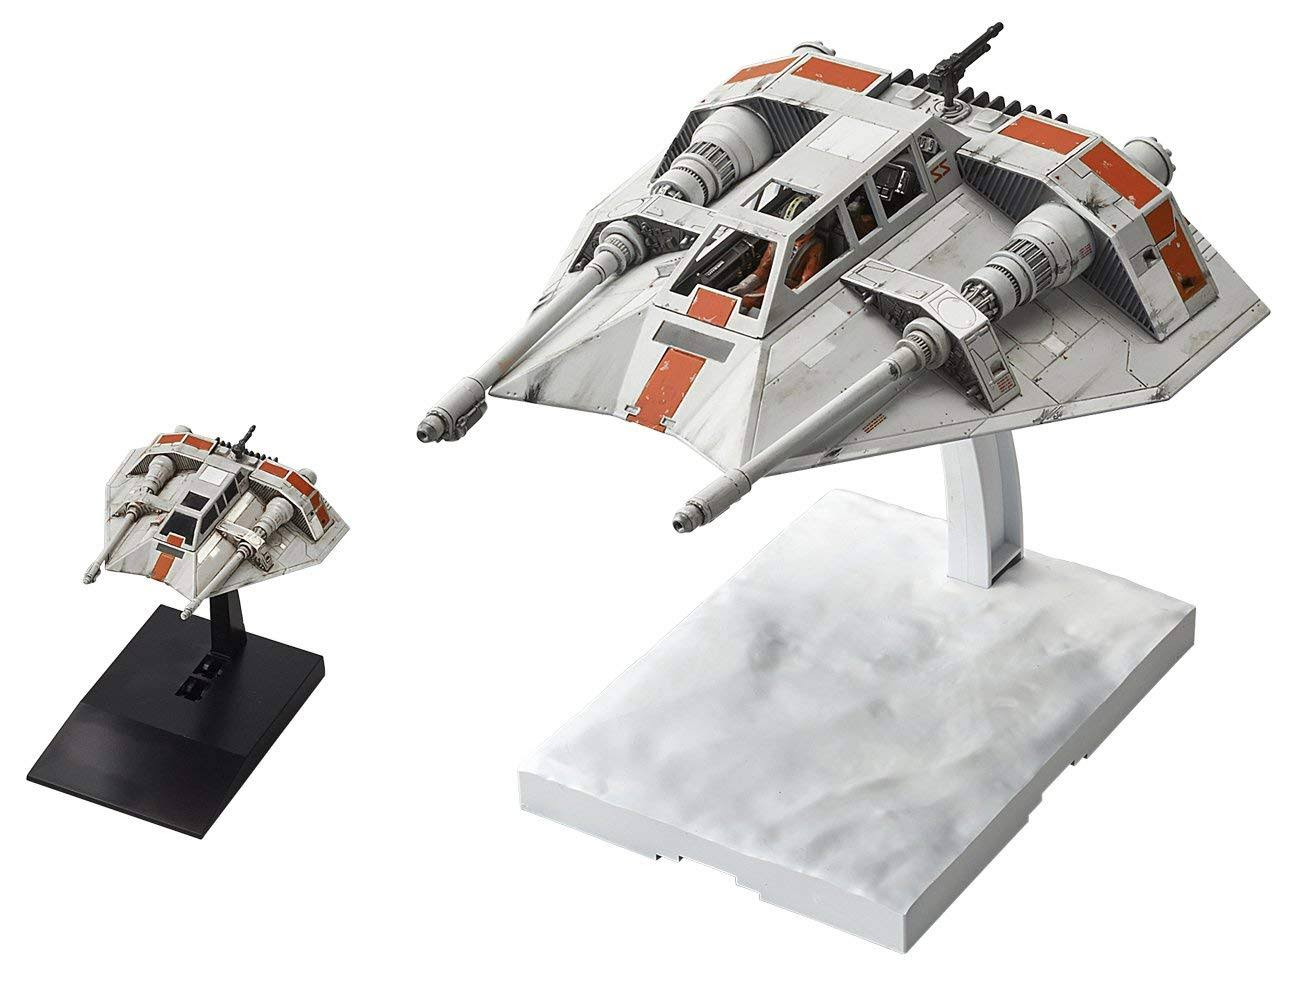 Bandai Star Wars Snowspeeder 1:48 & 1:144 Scale Plastic Model Kit